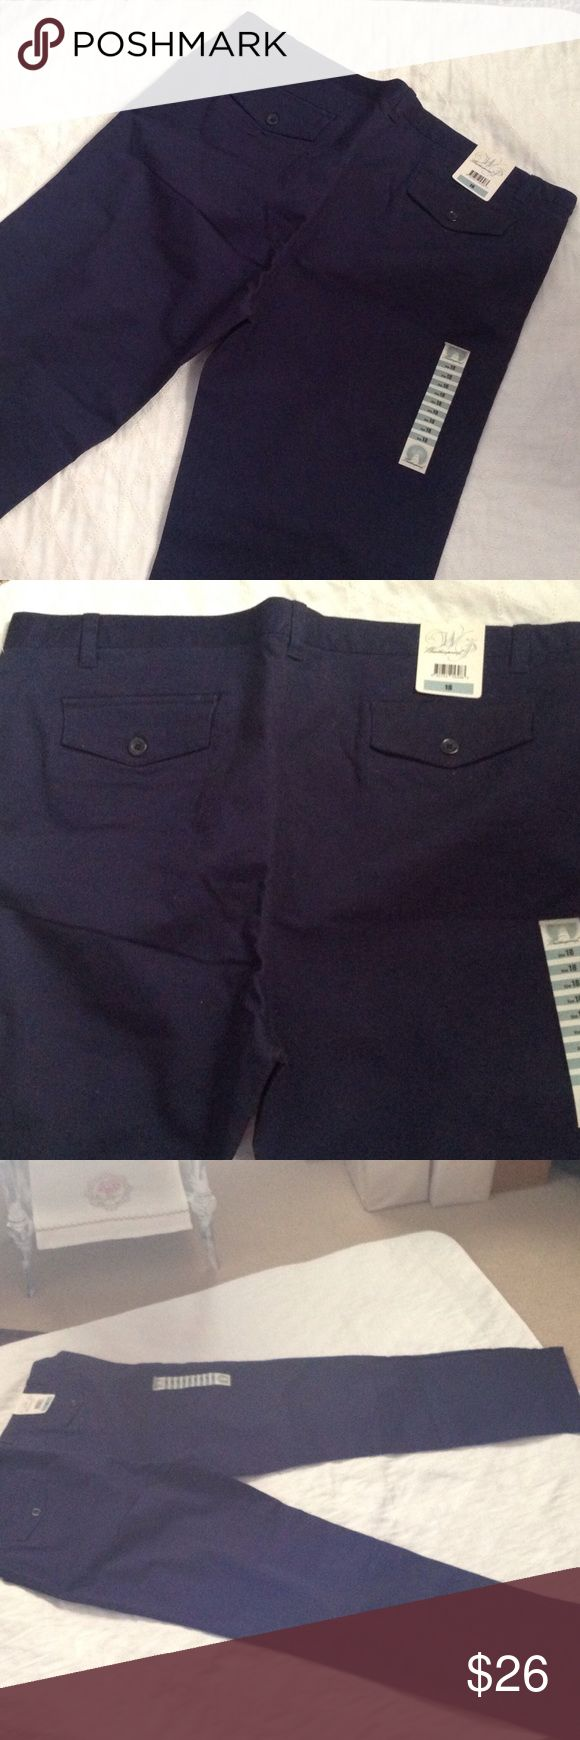 New size 18 women's navy pants by Weatherproof A new pair of Weatherproof navy blue ladies pants size 18. No stains, rips from a smoke free home. Inseam measures 30 inches. These have 2 % spandex for a more comfortable fit. Weatherproof Pants Trousers